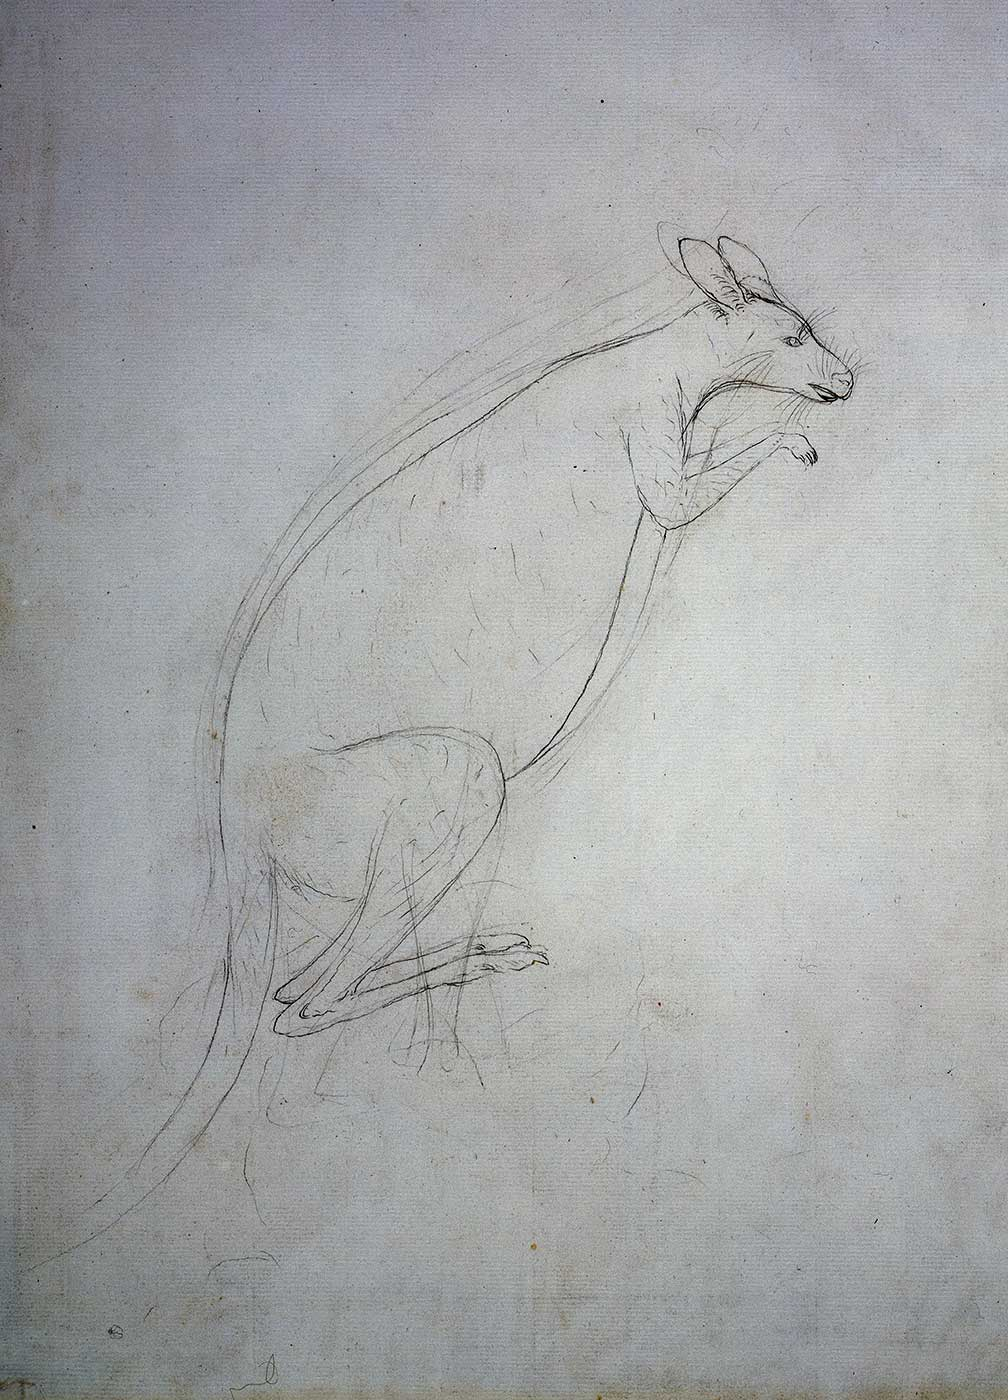 Rought sketch of a kangaroo. - click to view larger image